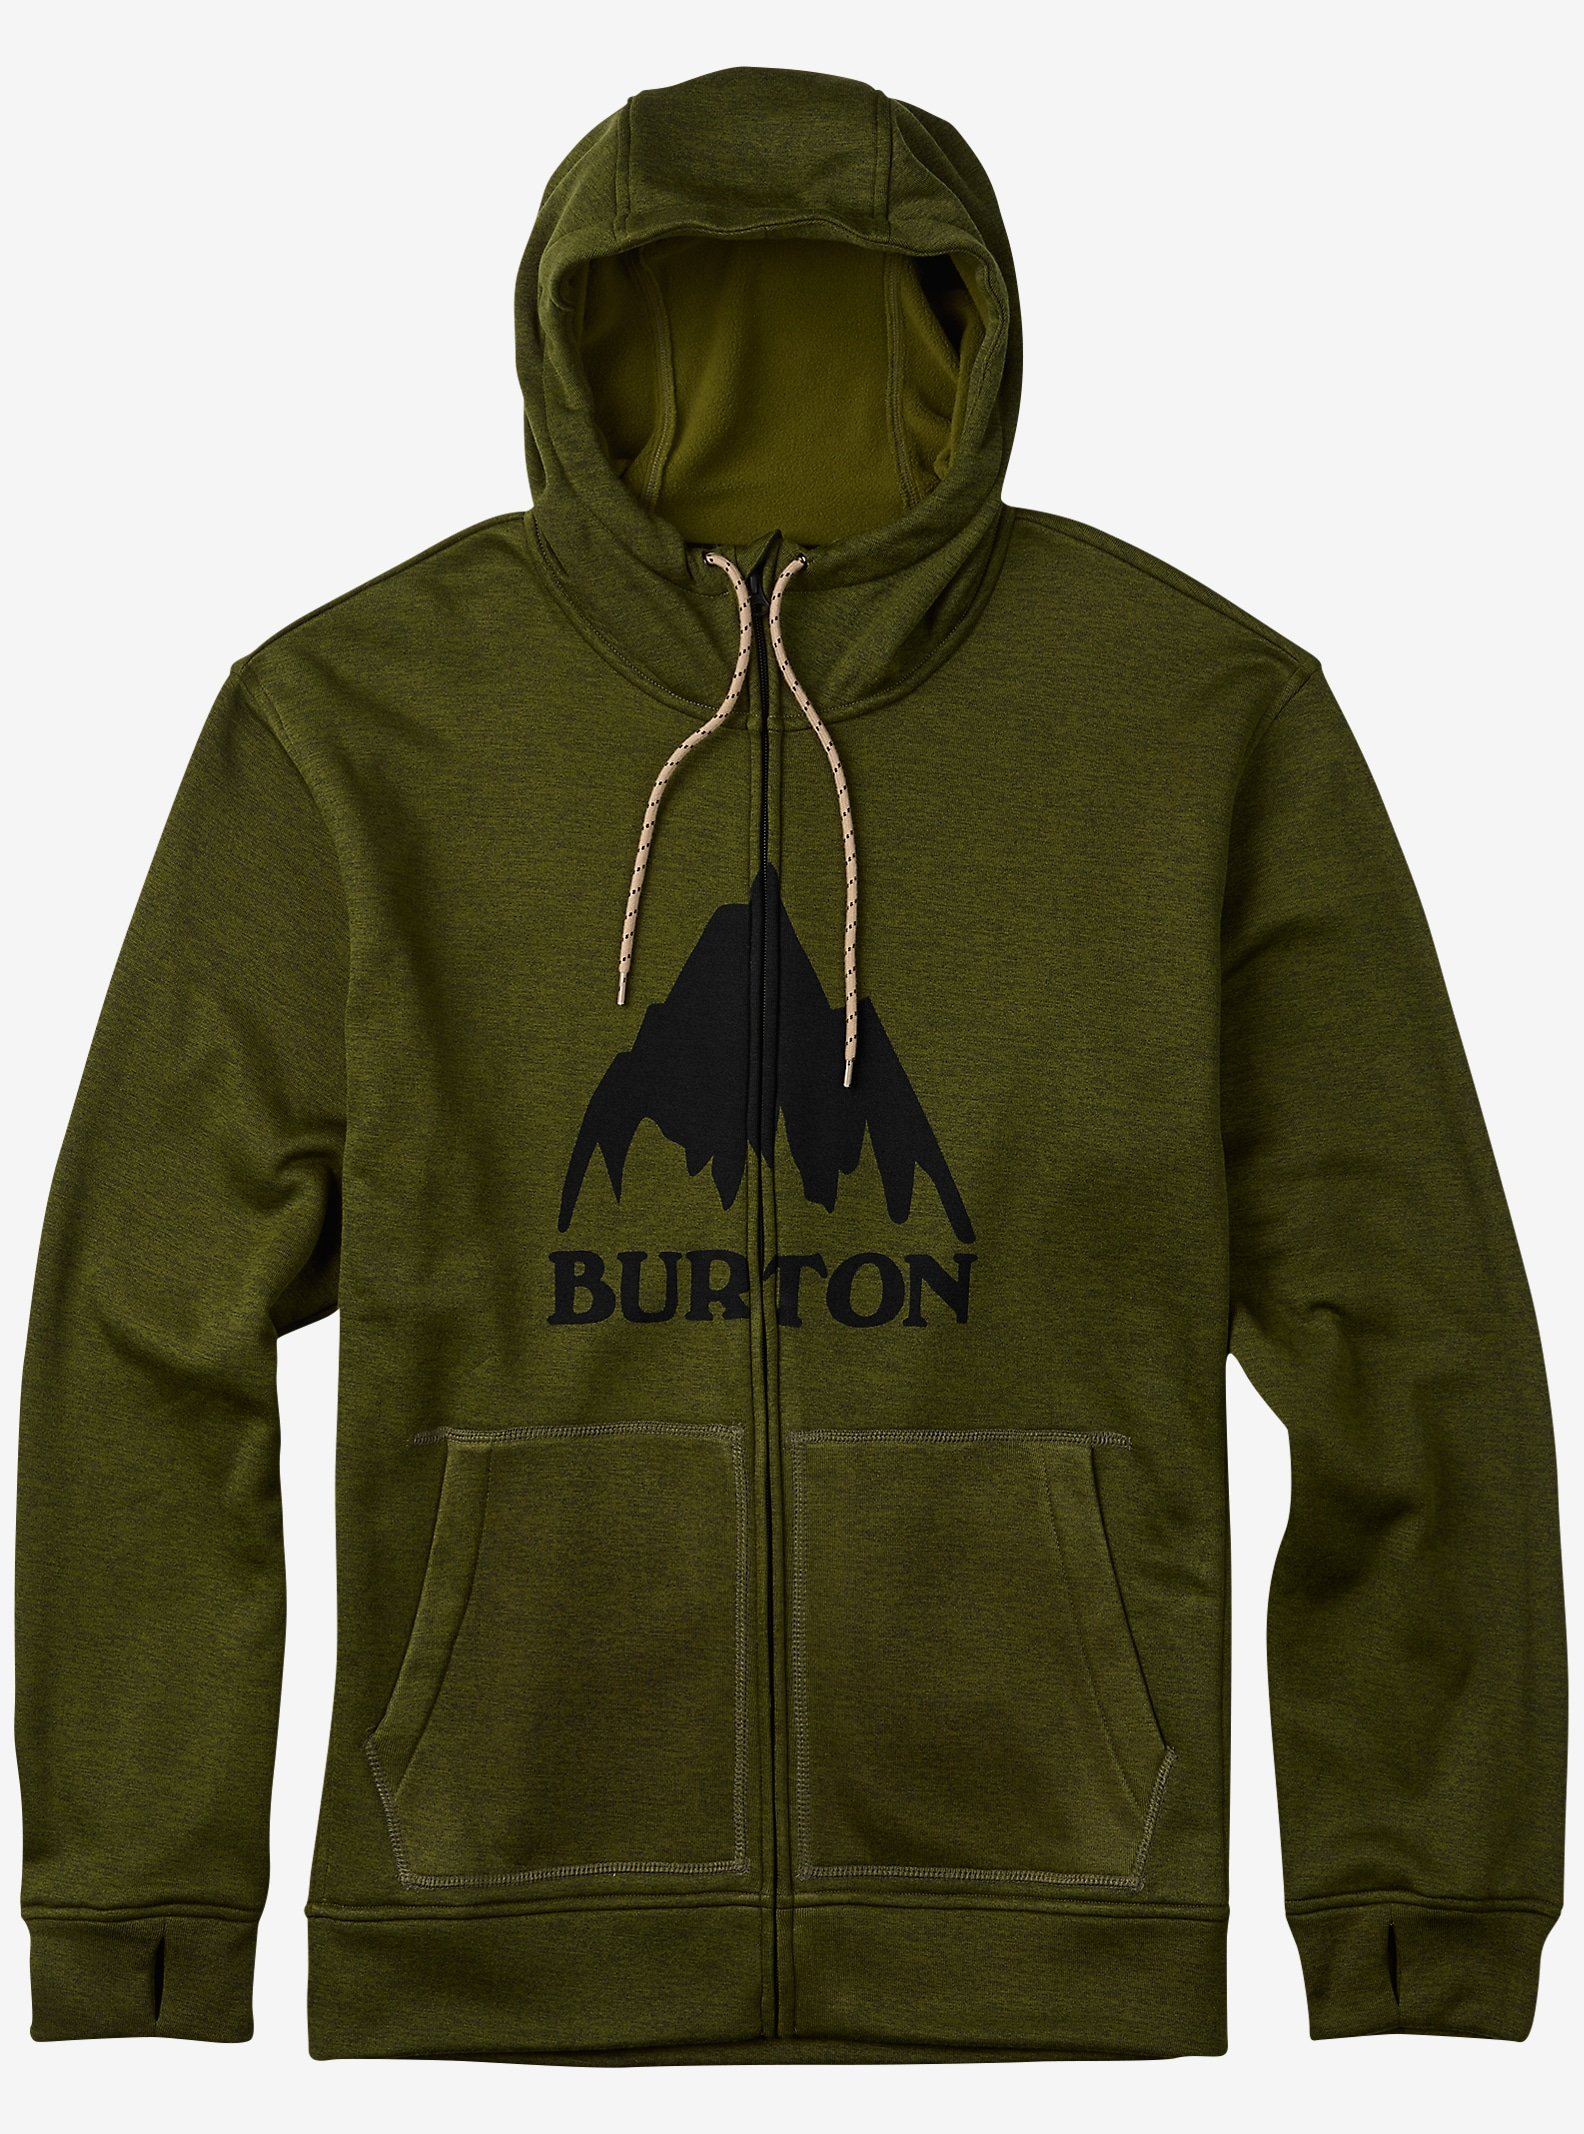 Burton Oak Full-Zip Hoodie shown in Olive Branch Heather